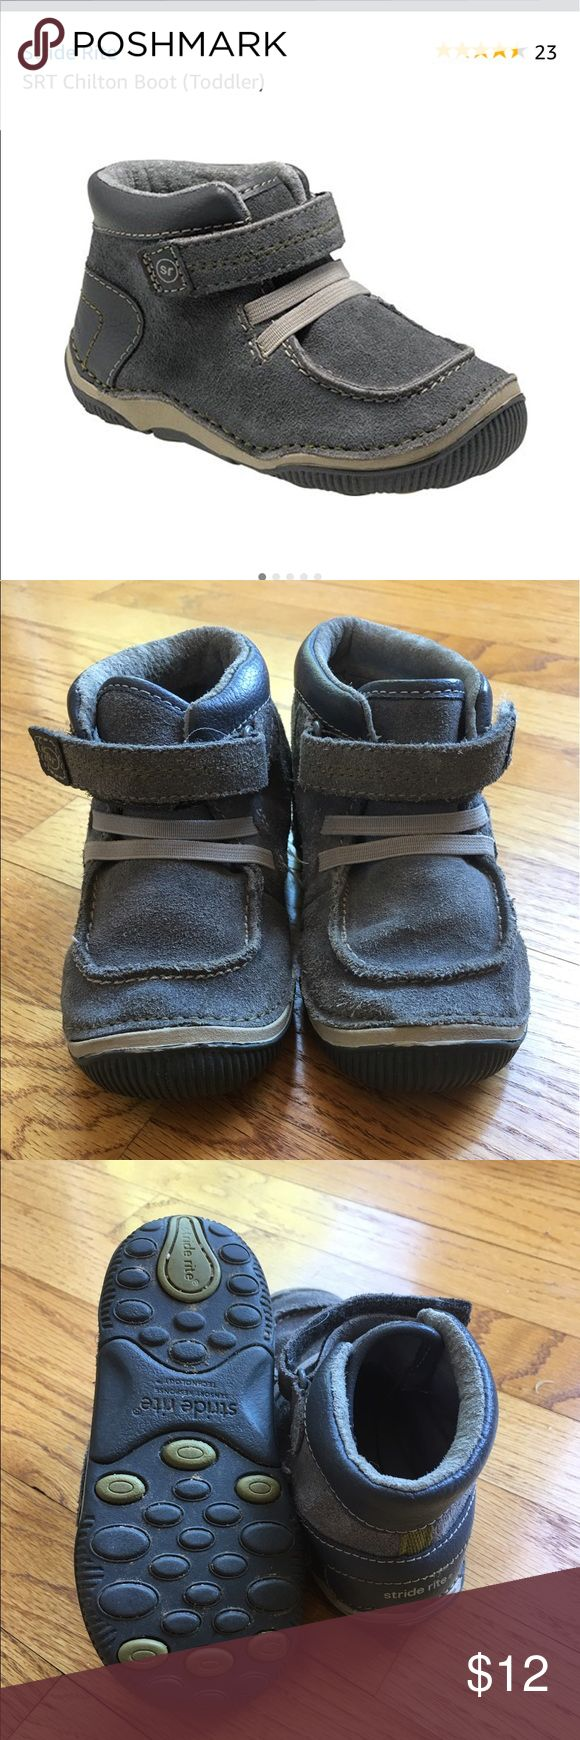 Stride rite Chilton toddler boots 7.5M Stride rite Chilton toddler boots 7.5M. Good used condition. Currently selling on Amazon for $50. Great quality shoe that will last. Stride Rite Shoes Boots